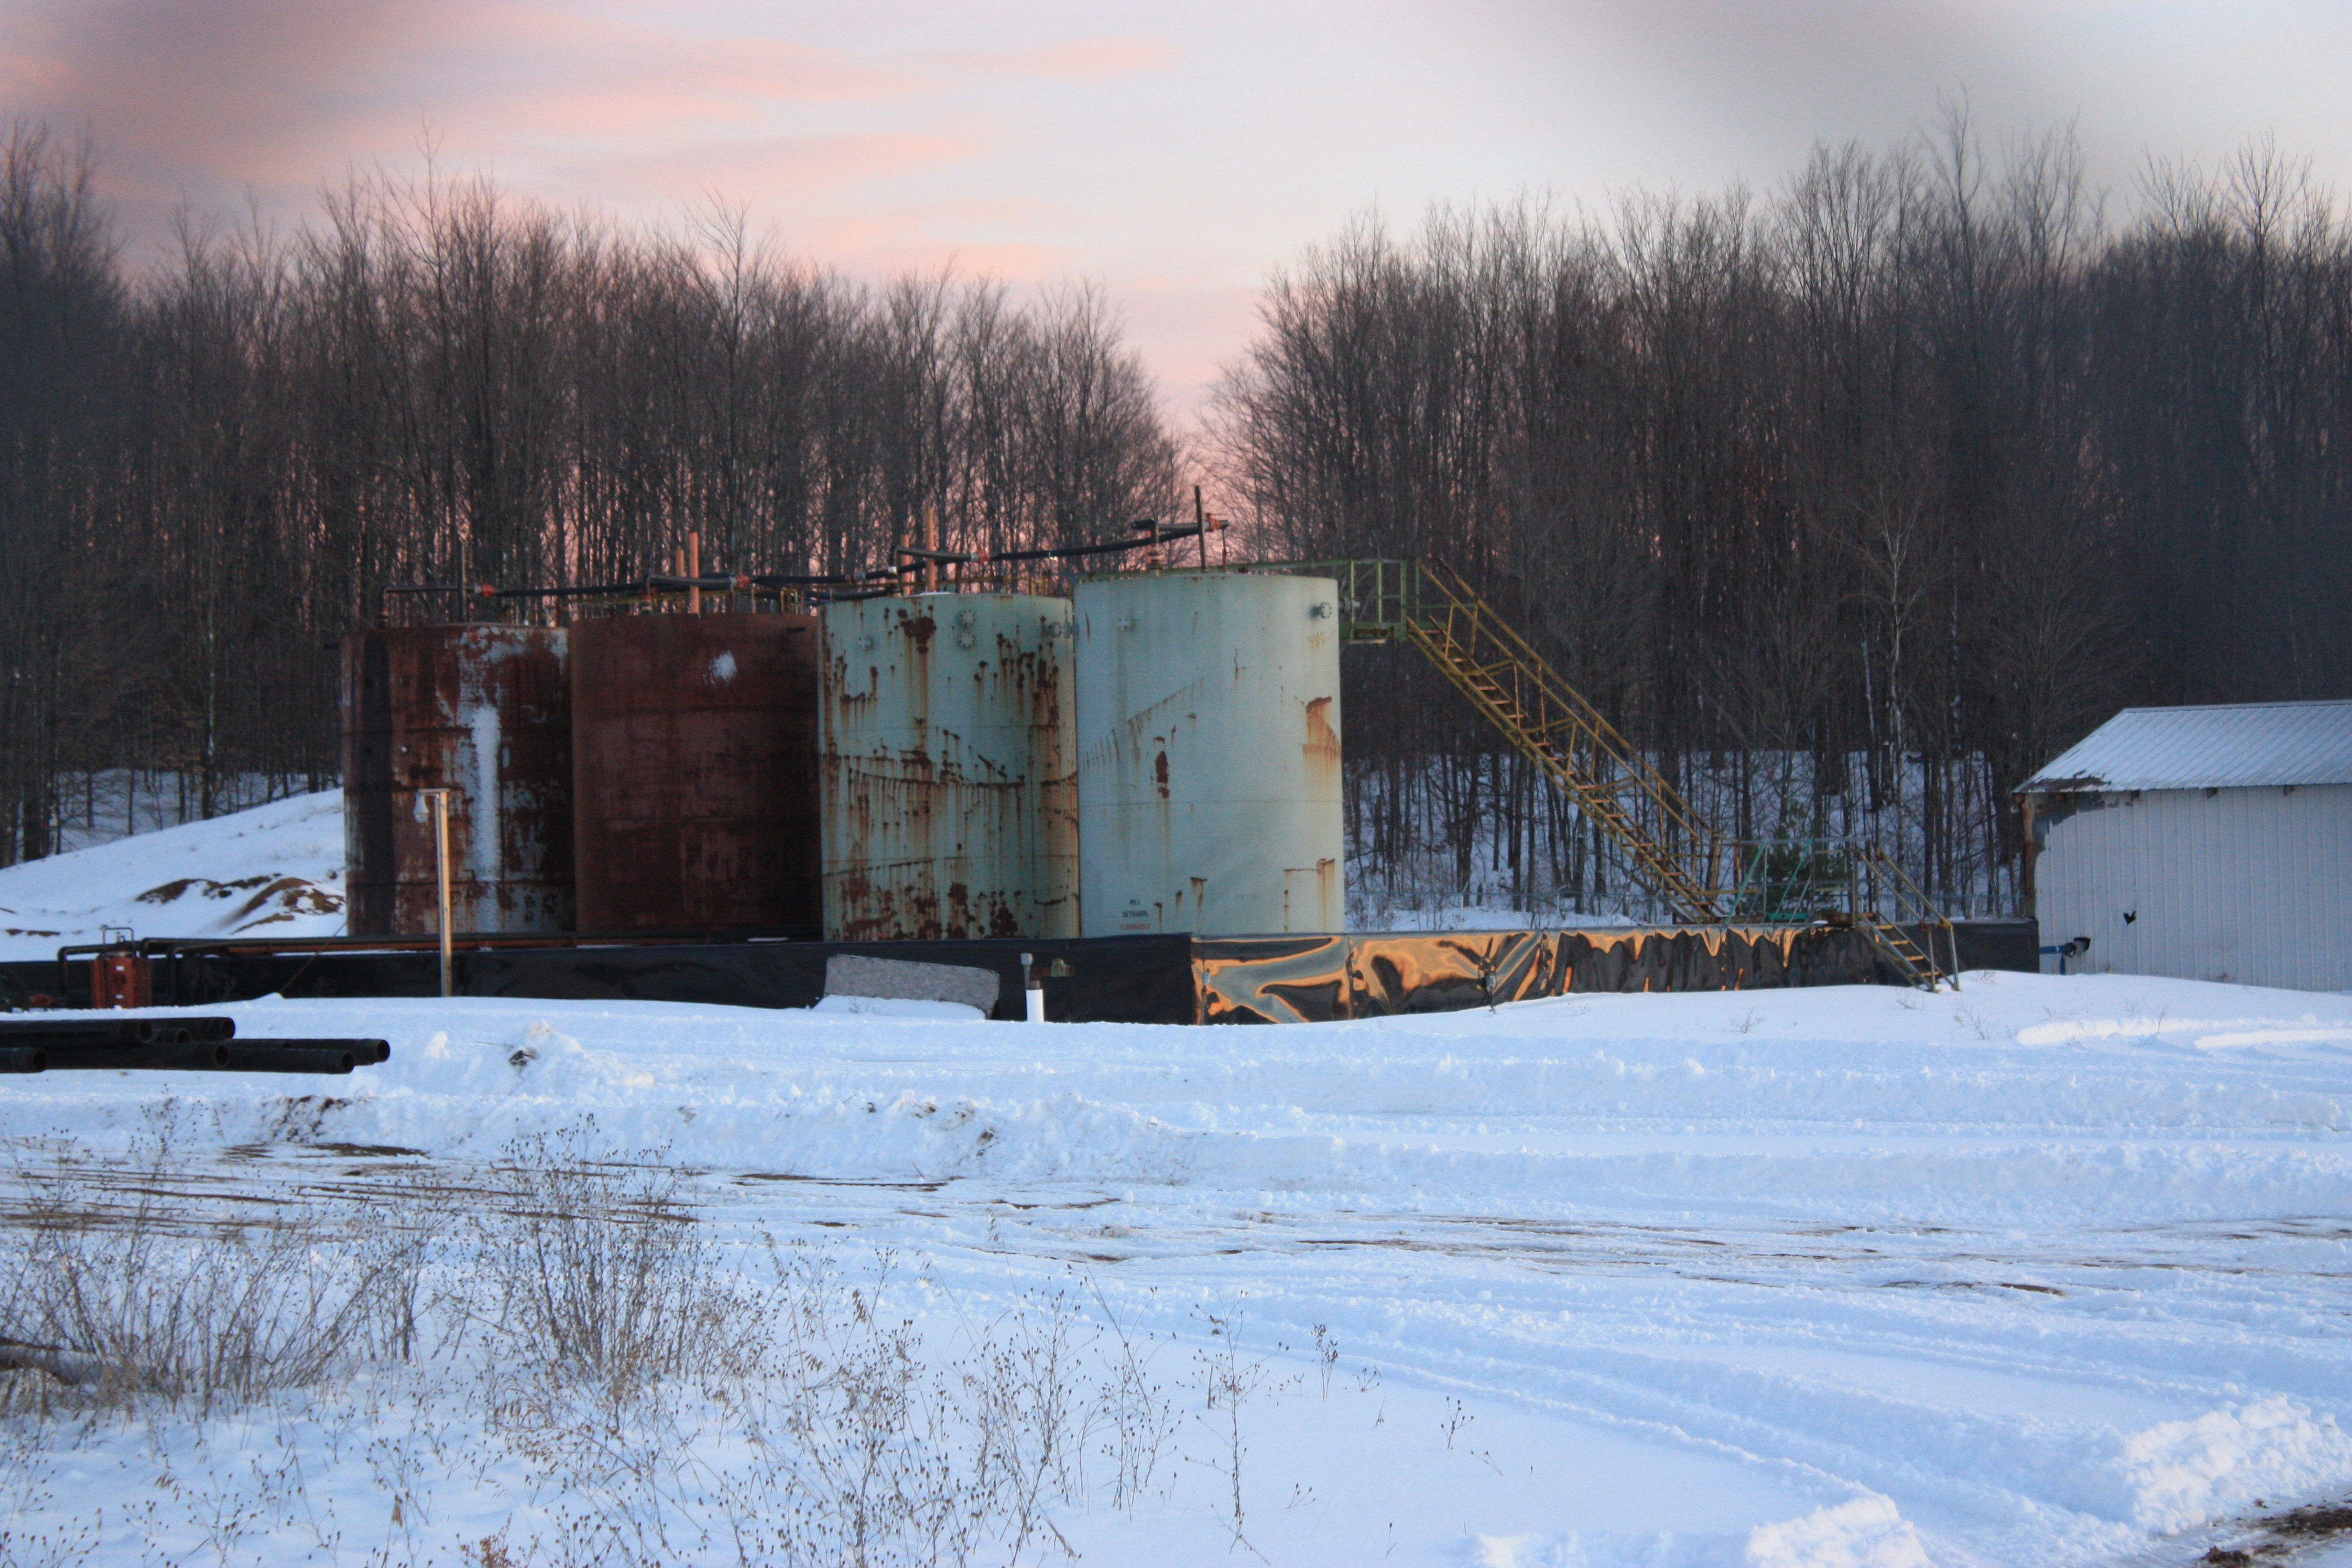 One of the many injection wells used to dispose of horizontal frack wastes in Michigan, the Slowinski injection well in Kalkaska County. Photo by LuAnne Kozma.